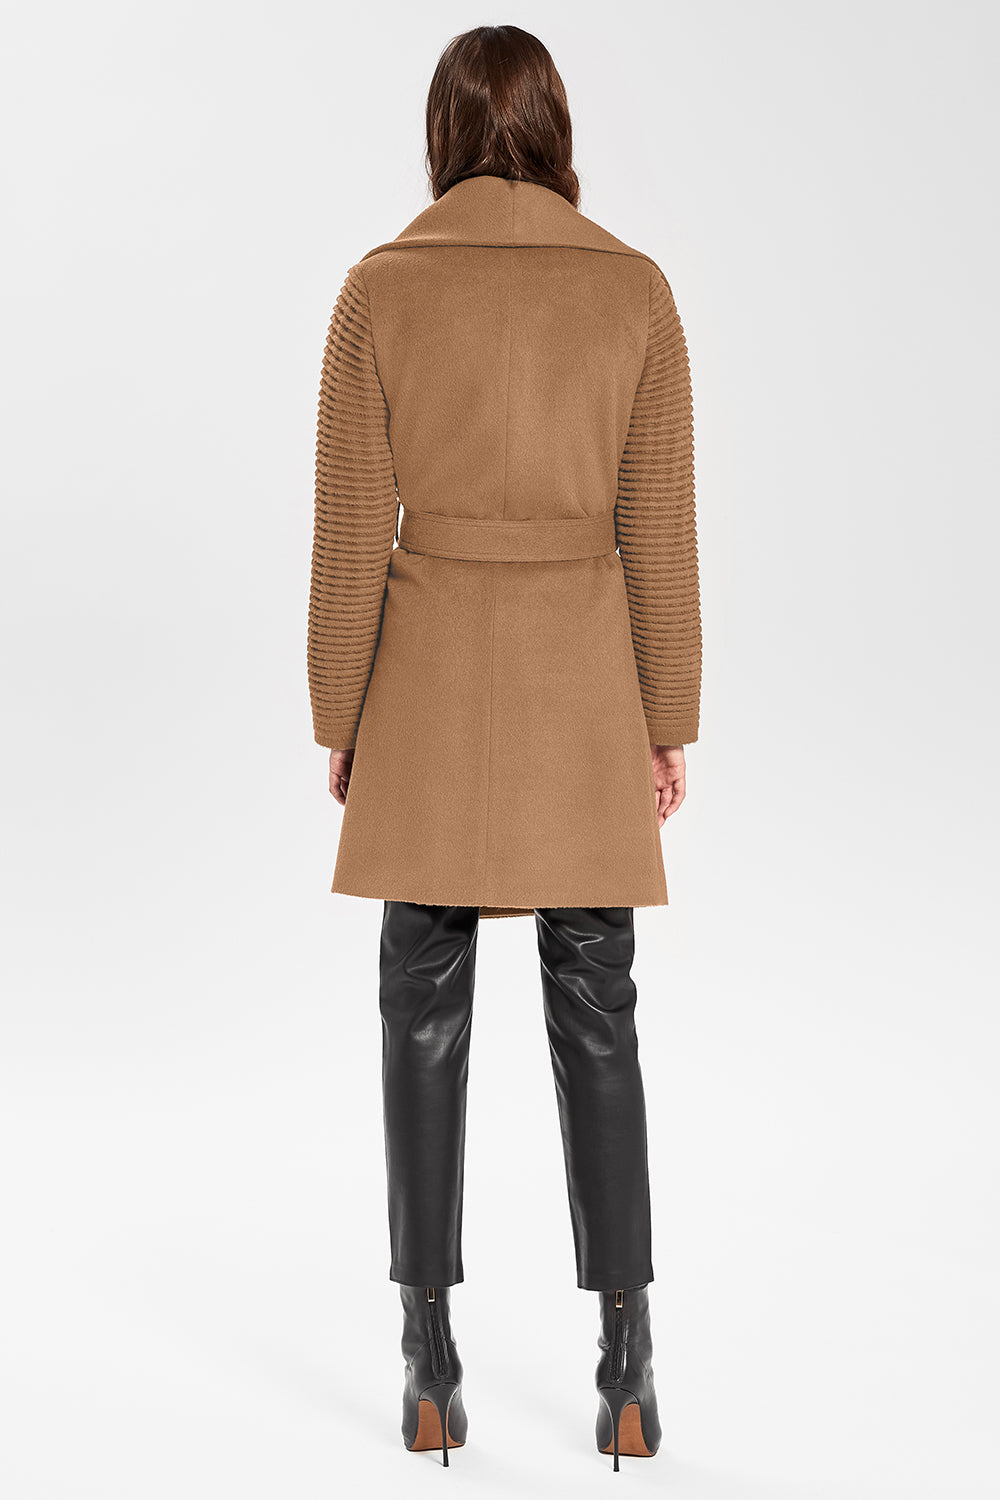 Sentaler Mid Length Shawl Collar Wrap Coat with Ribbed Sleeves featured in Baby Alpaca and available in Dark Camel. Seen from back.